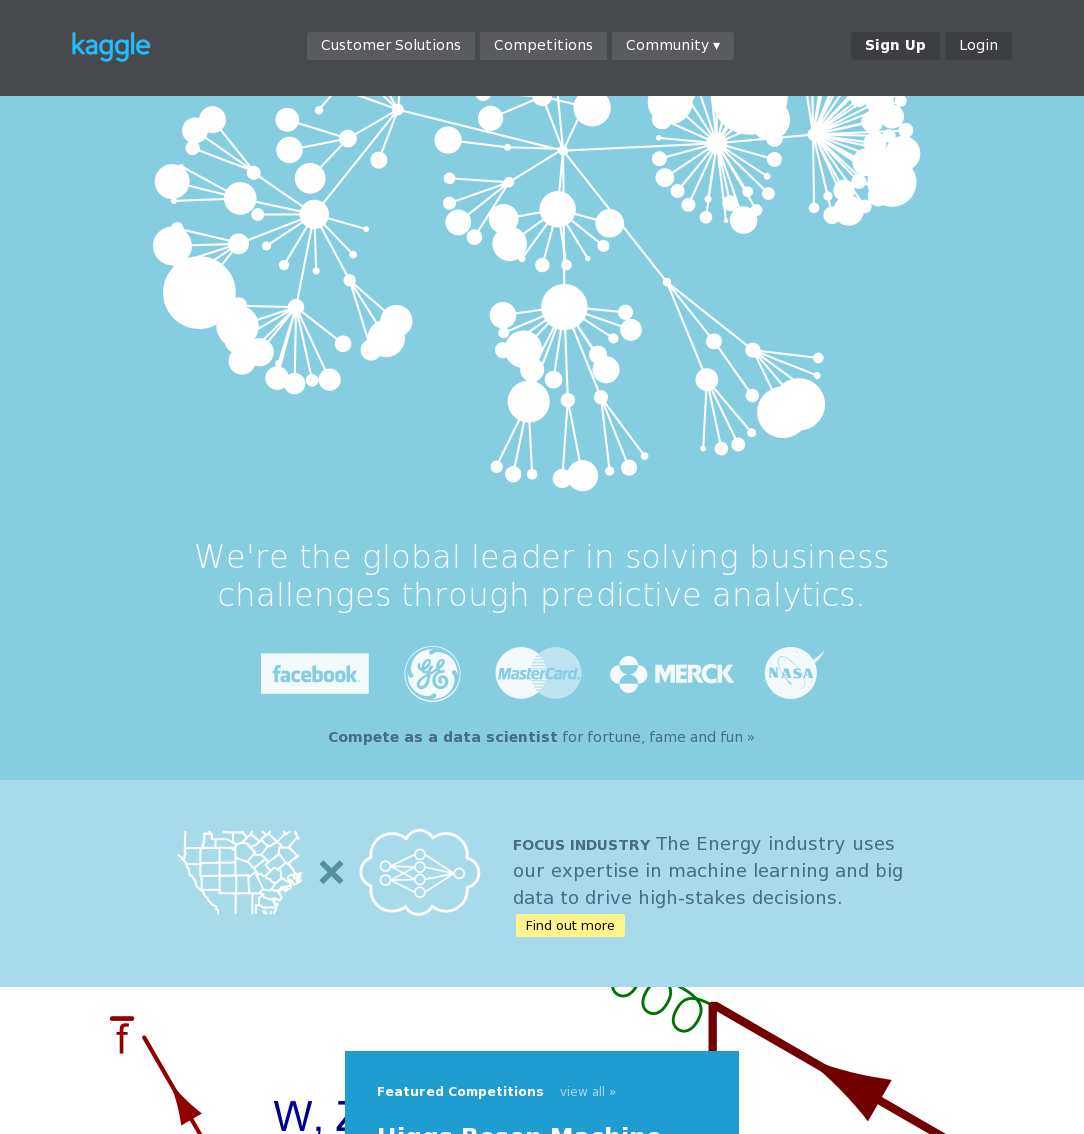 Meet the Speakers for Kaggle Days Tokyo 12222